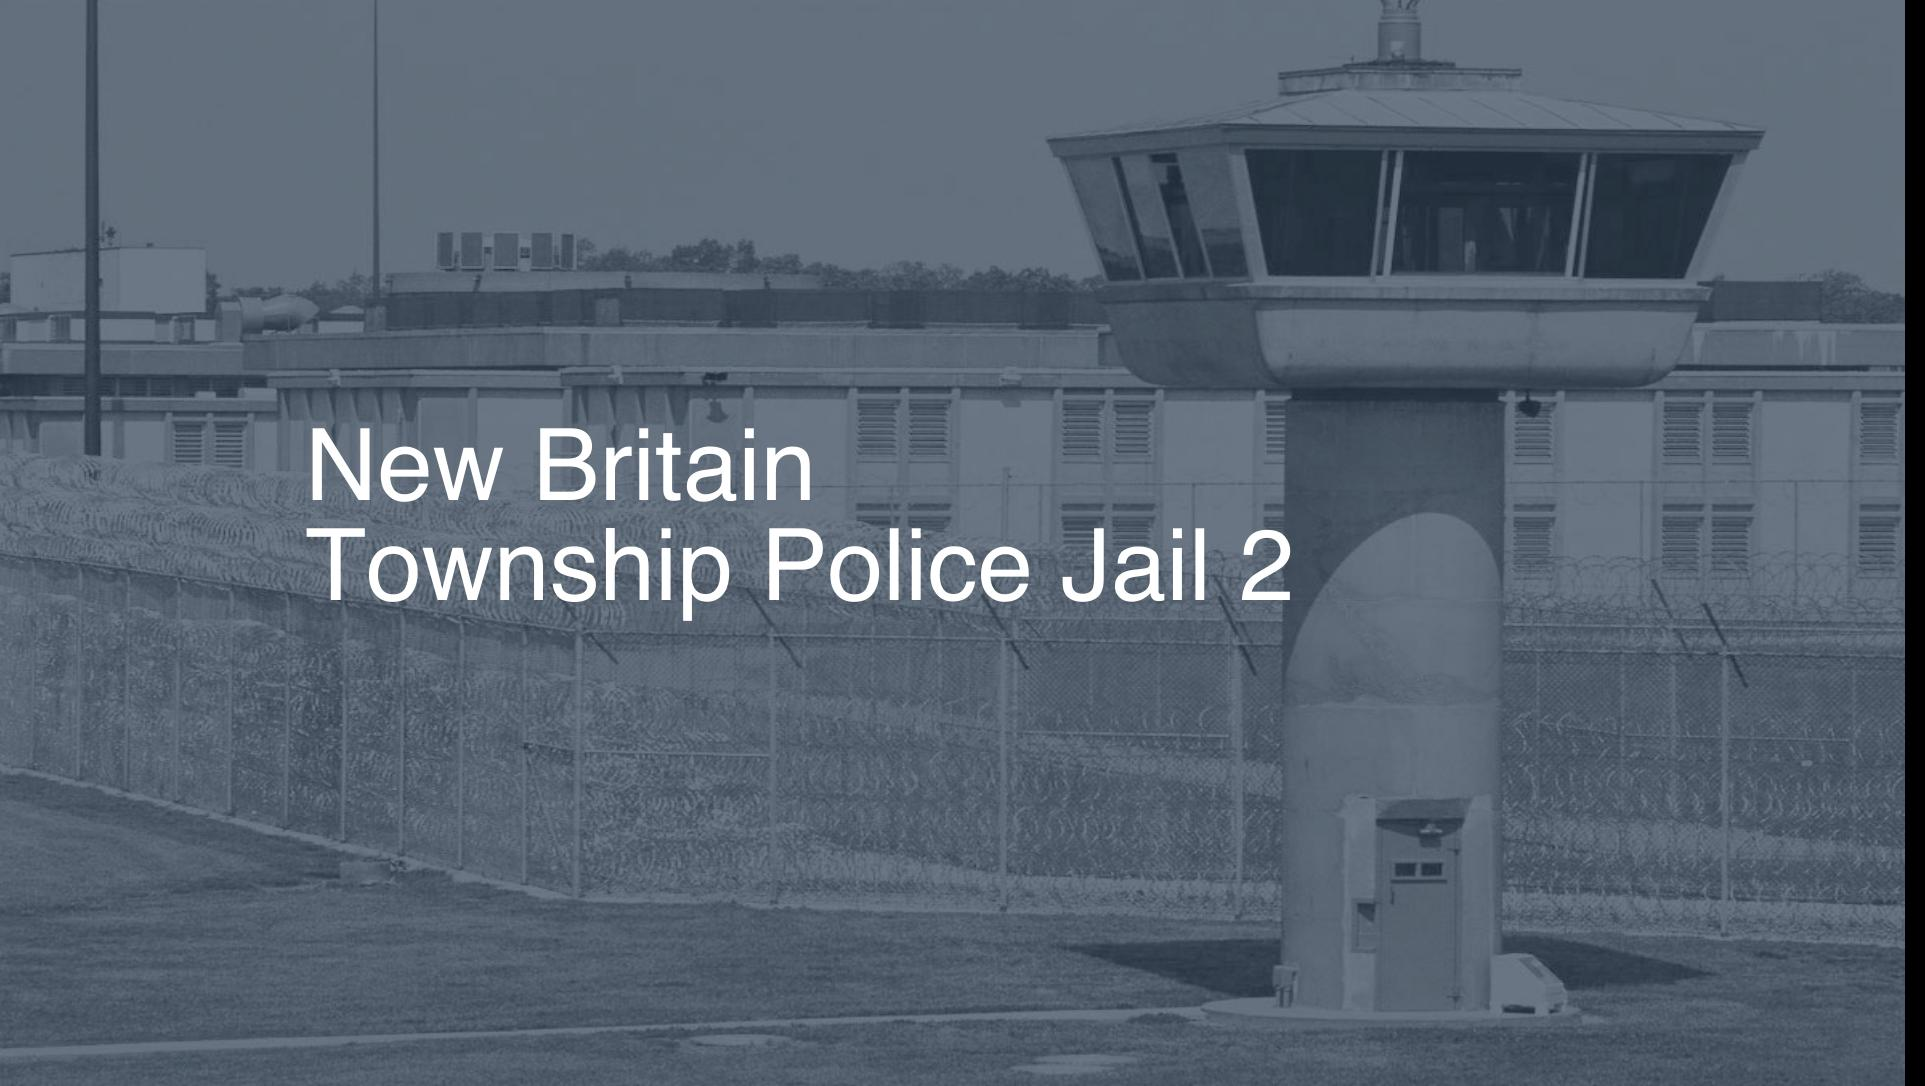 New Britain Township Police Jail correctional facility picture